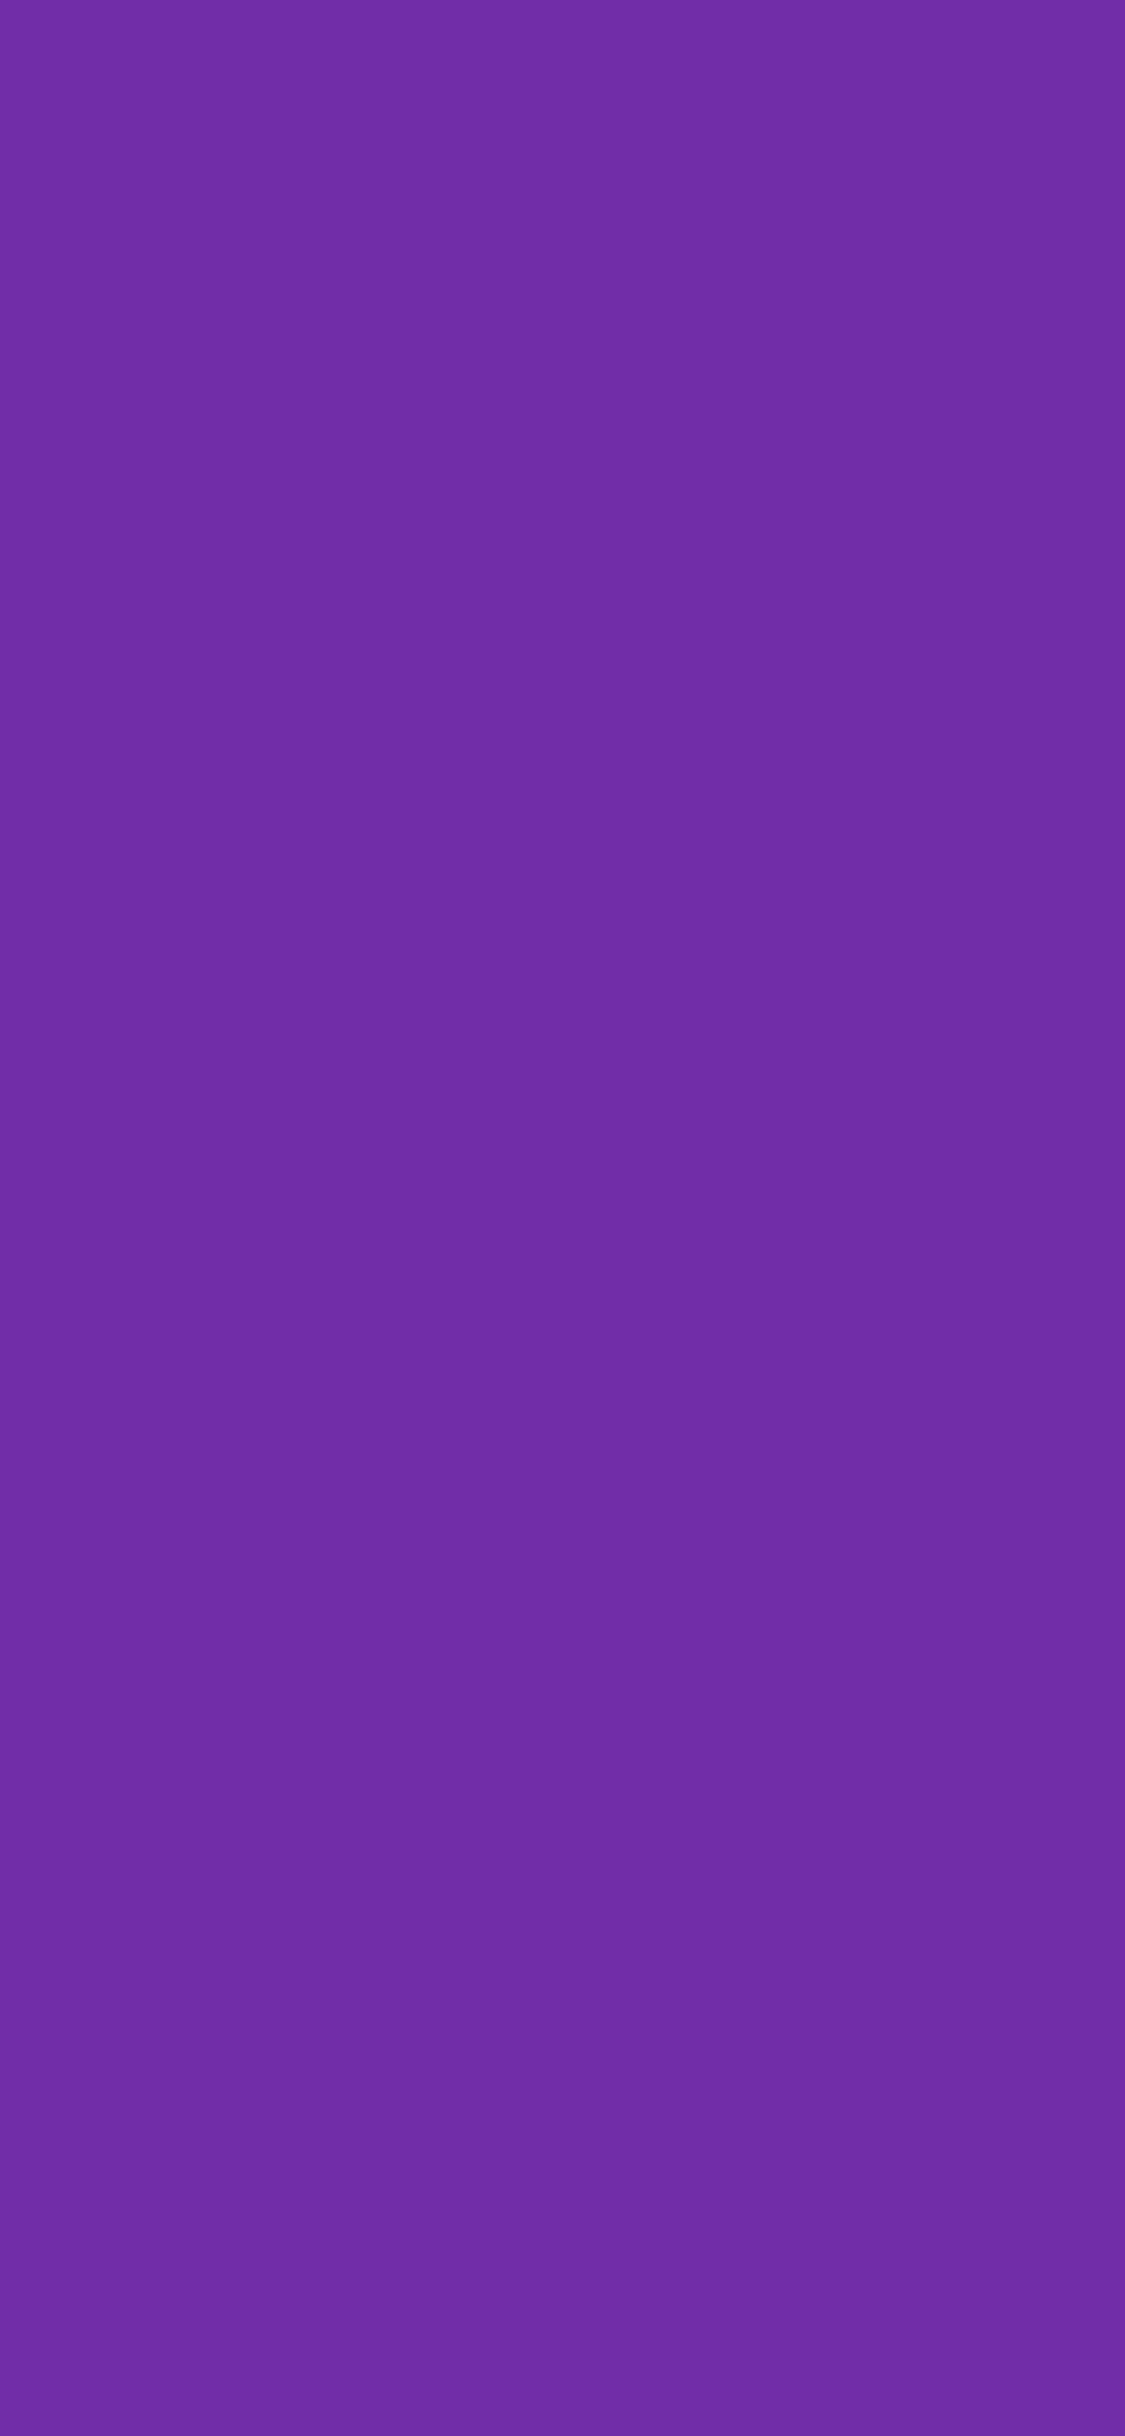 1125x2436 Grape Solid Color Background